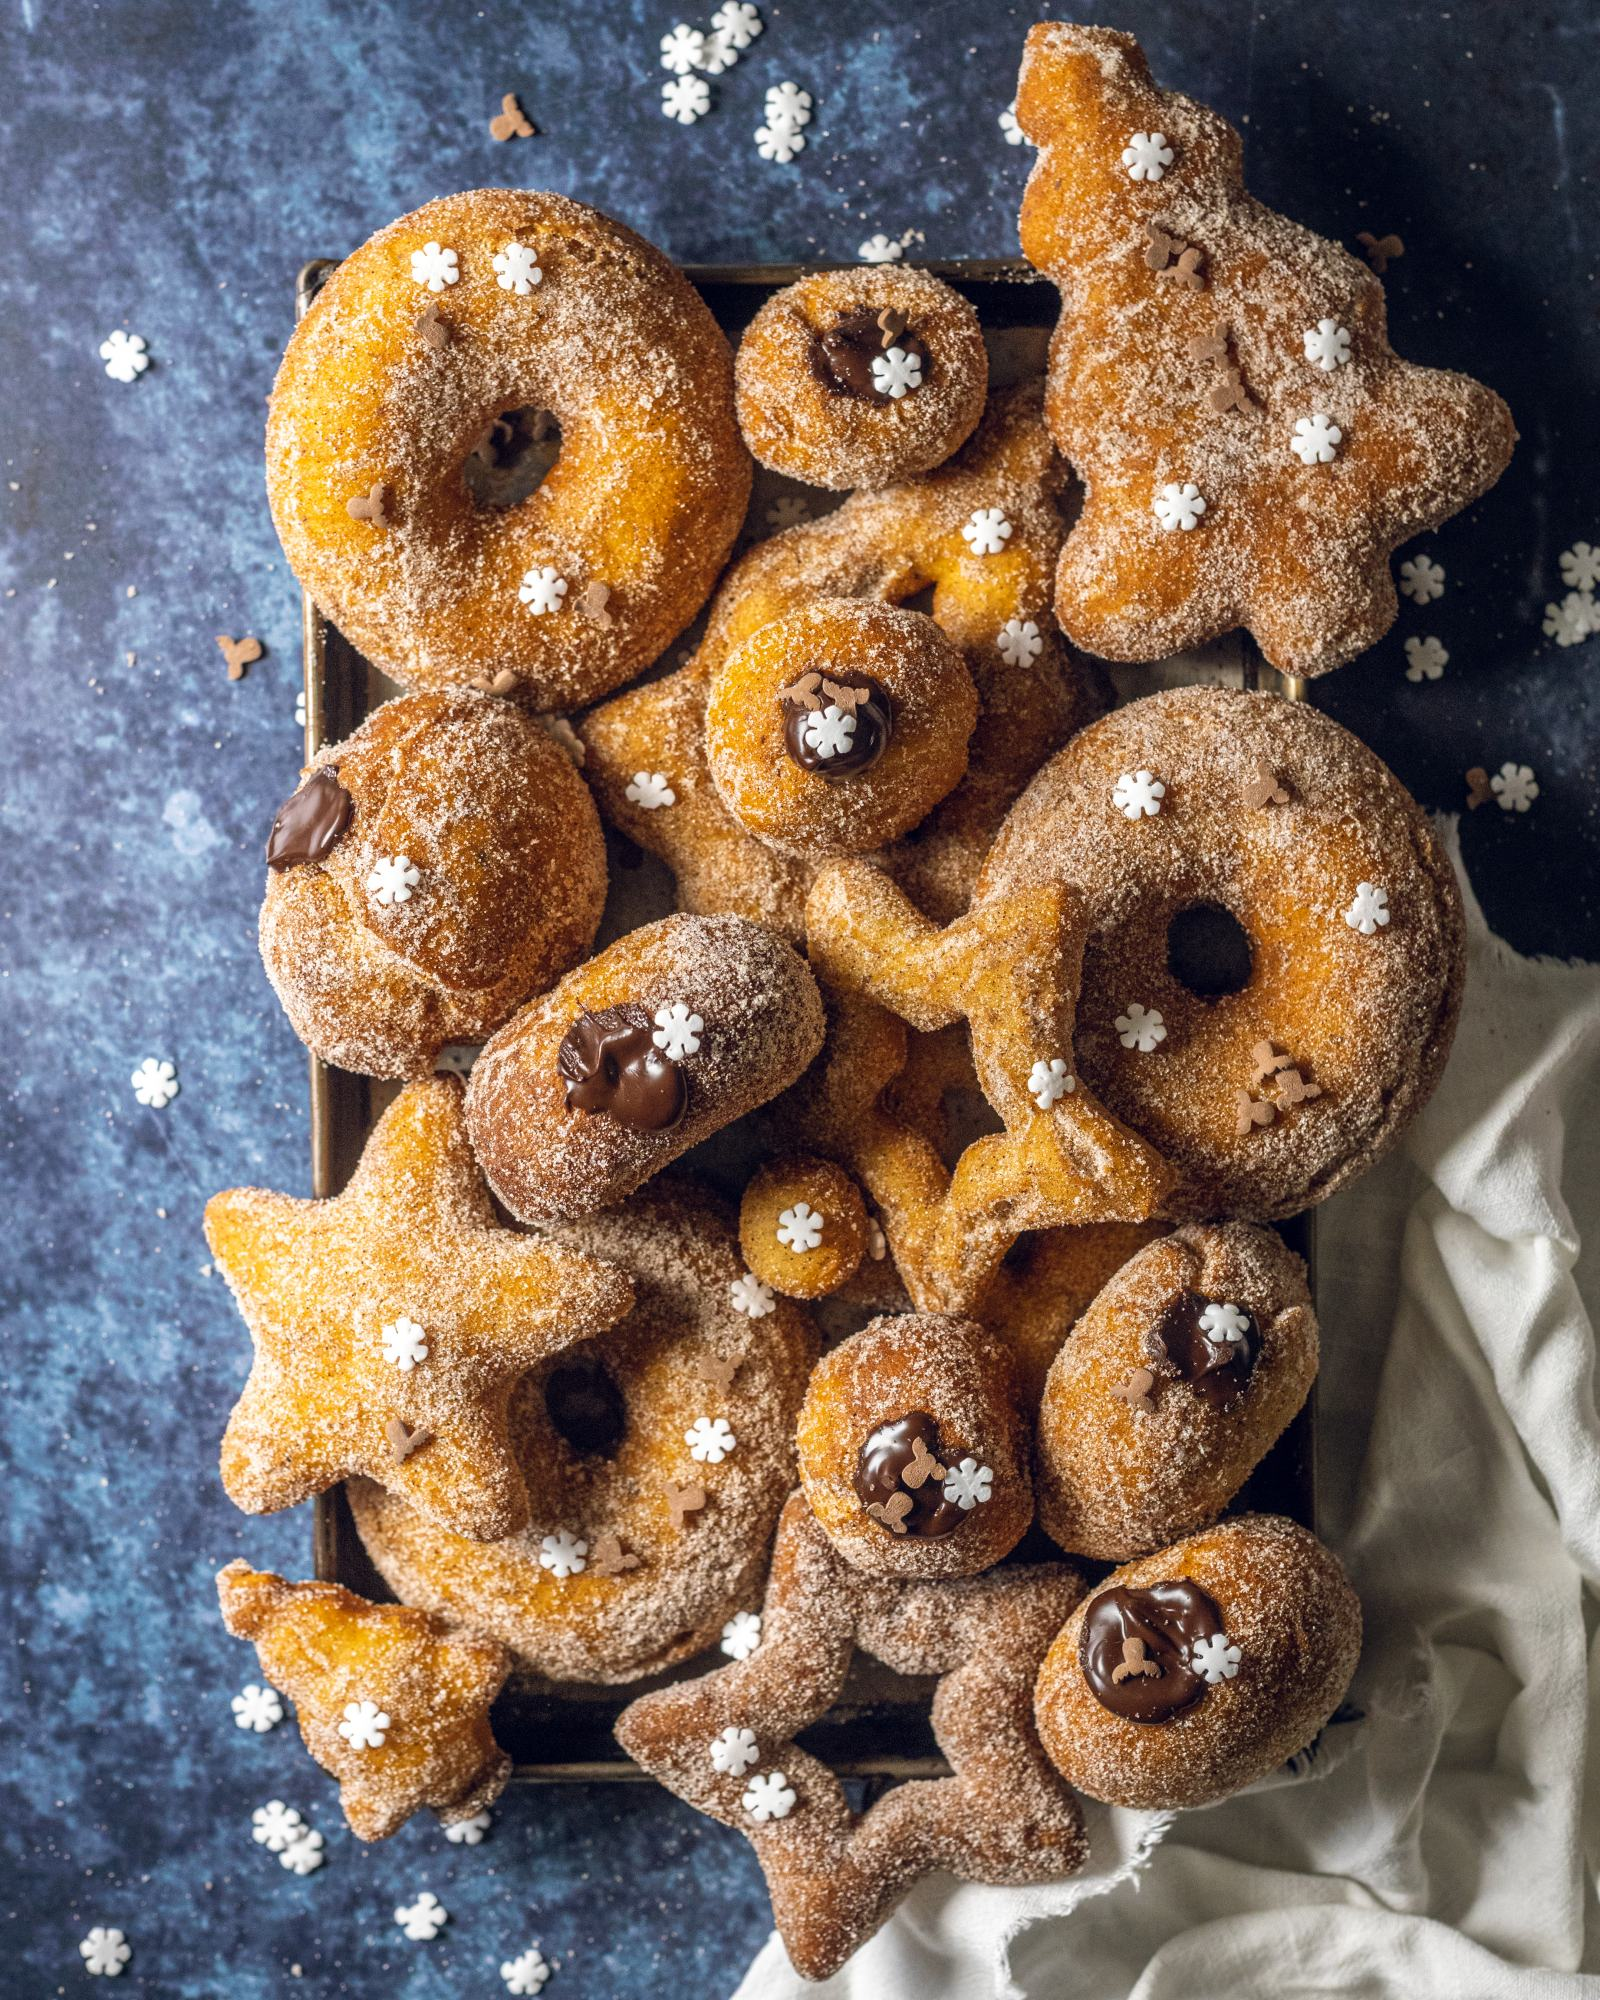 Vegan Donuts with Cinnamon Sugar photographed from above on a dark blue background, different shapes and sizes, some filled with chocolate and sprinkled with snowflake sprinkles